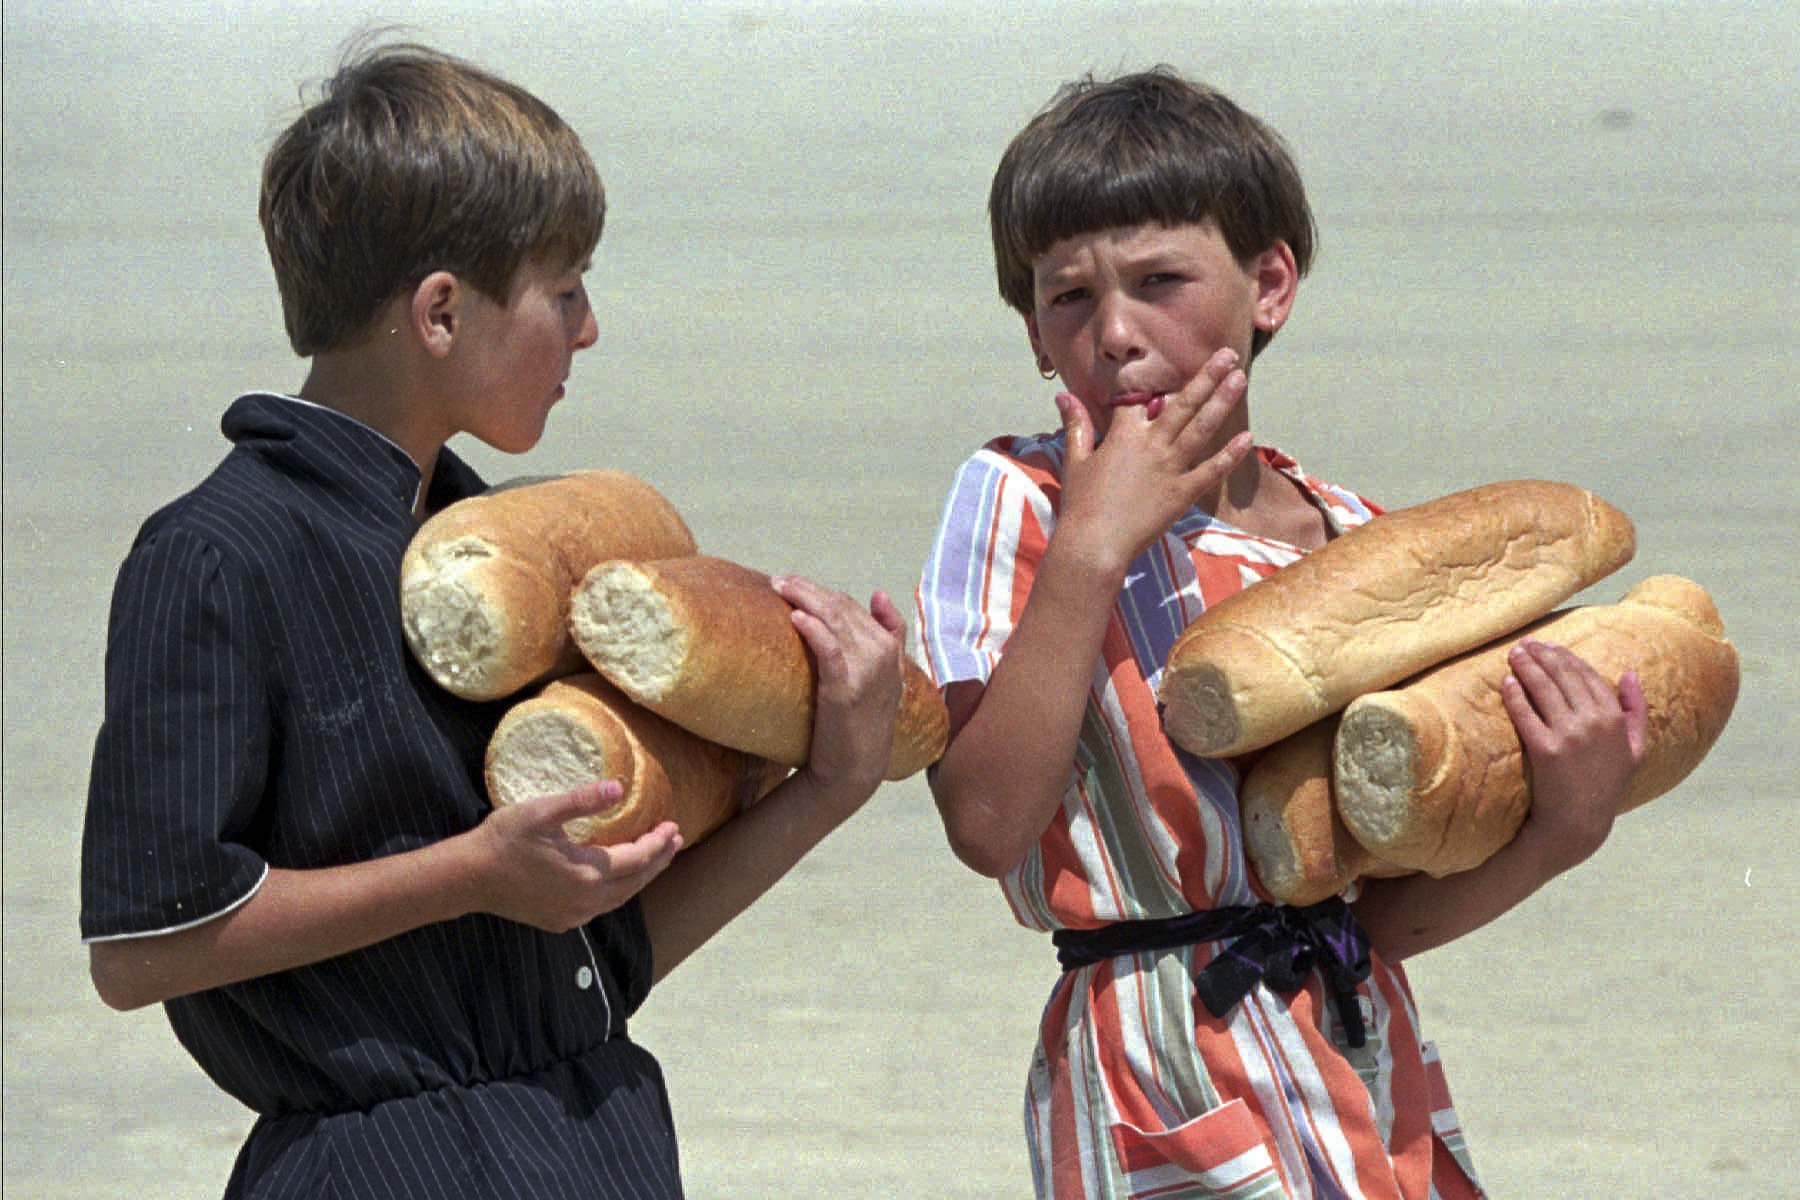 FILE- In this July 19, 1995, file picture, Bosnian refugee children from Srebrenica, carry loaves of bread, which they received from the United Nations at the refugee camp at Tuzla airport.  Survivors of the genocide in the eastern Bosnian town of Srebrenica, mainly women, will on Saturday July 11, 2020, commemorate the 25th anniversary of the slaughter of their fathers and brothers, husbands and sons. The slaughter was the only atrocity of the brutal war that has been confirmed an act of genocide. (AP Photo/Michel Euler, File)